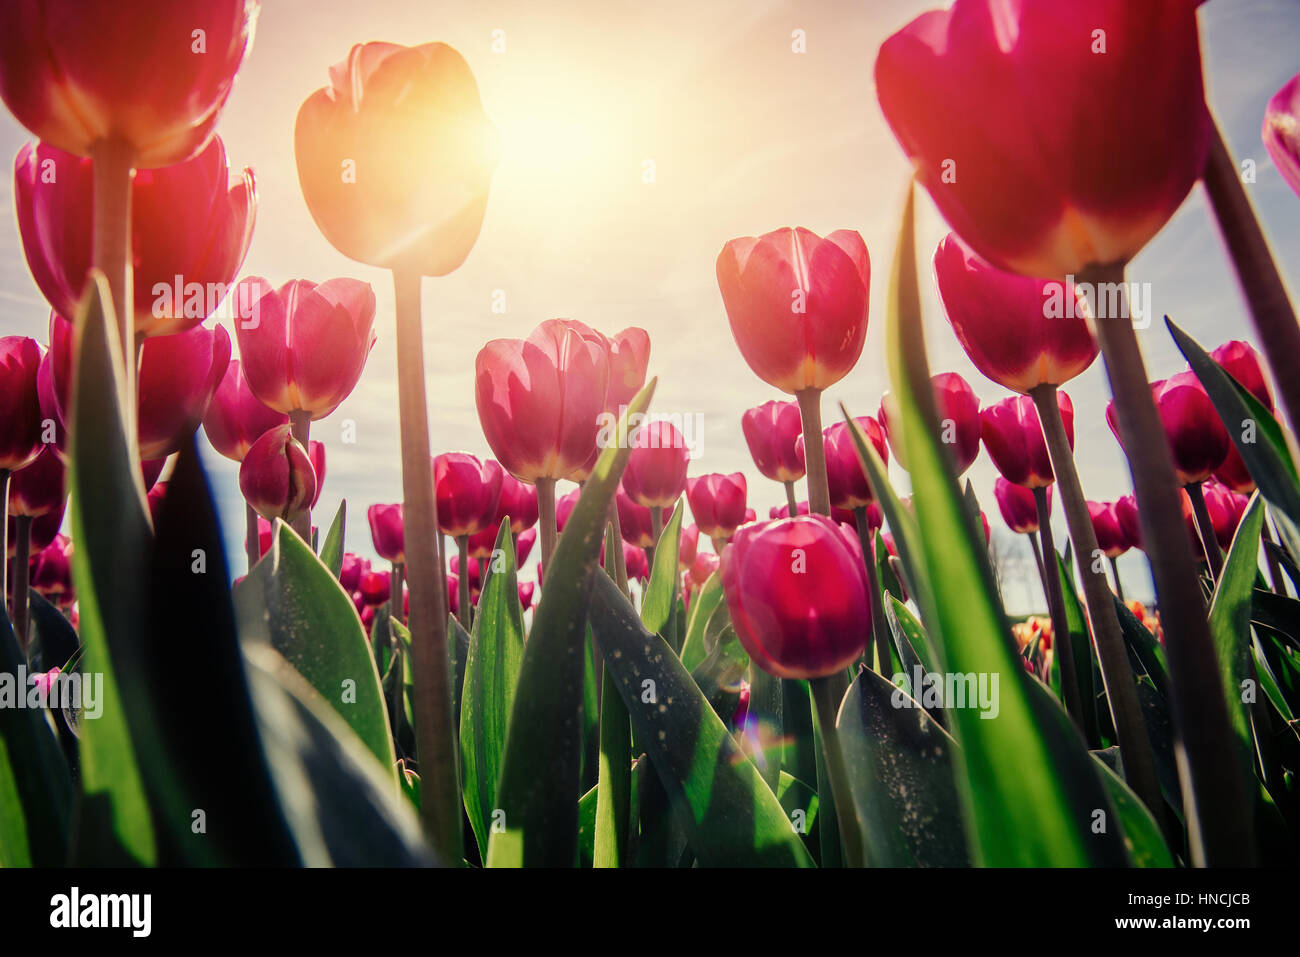 Pink tulips in Holland. - Stock Image